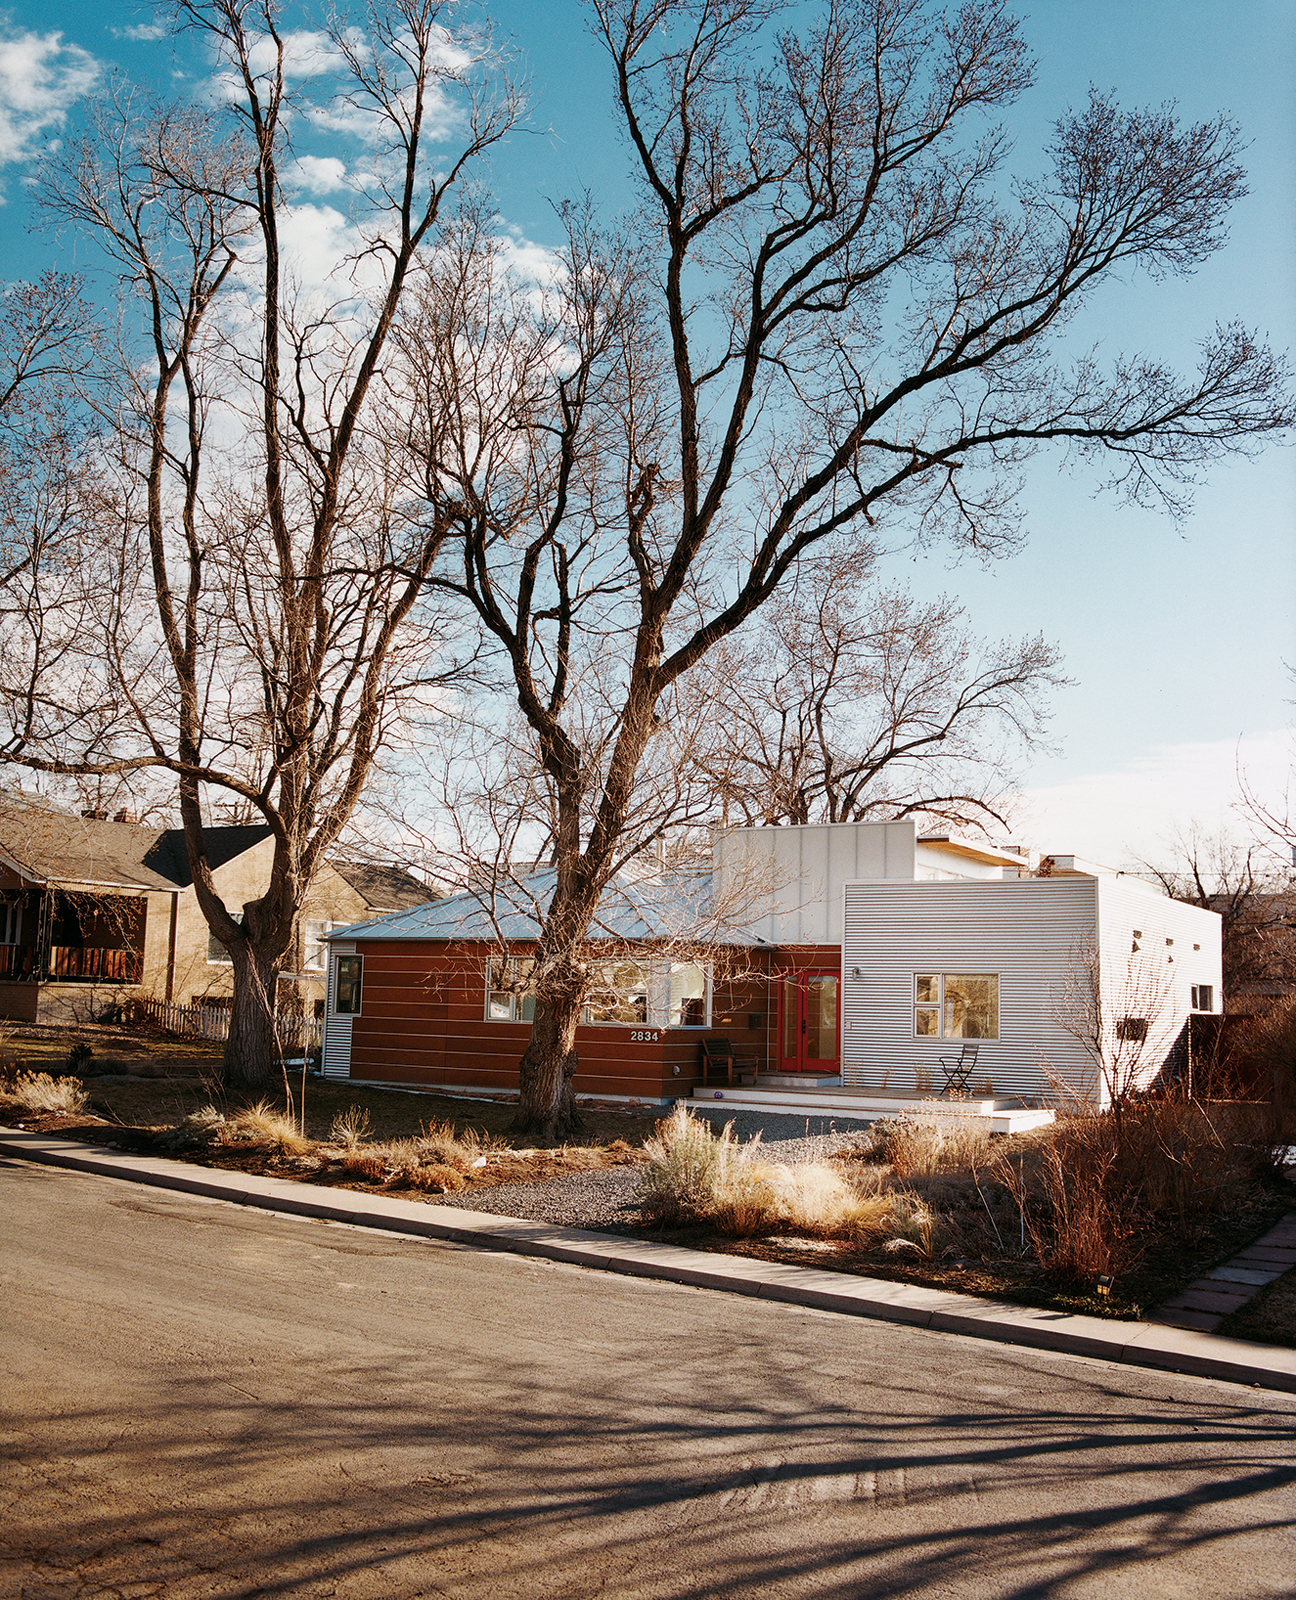 Architect Rob Pyatt's box-shaped addition is the modern kid on the block, with distinctive corrugated-metal and wide-plank cladding. Behind the facade, uncommon materials share a common story with the neighborhood: Of design decisions driven by a desire t